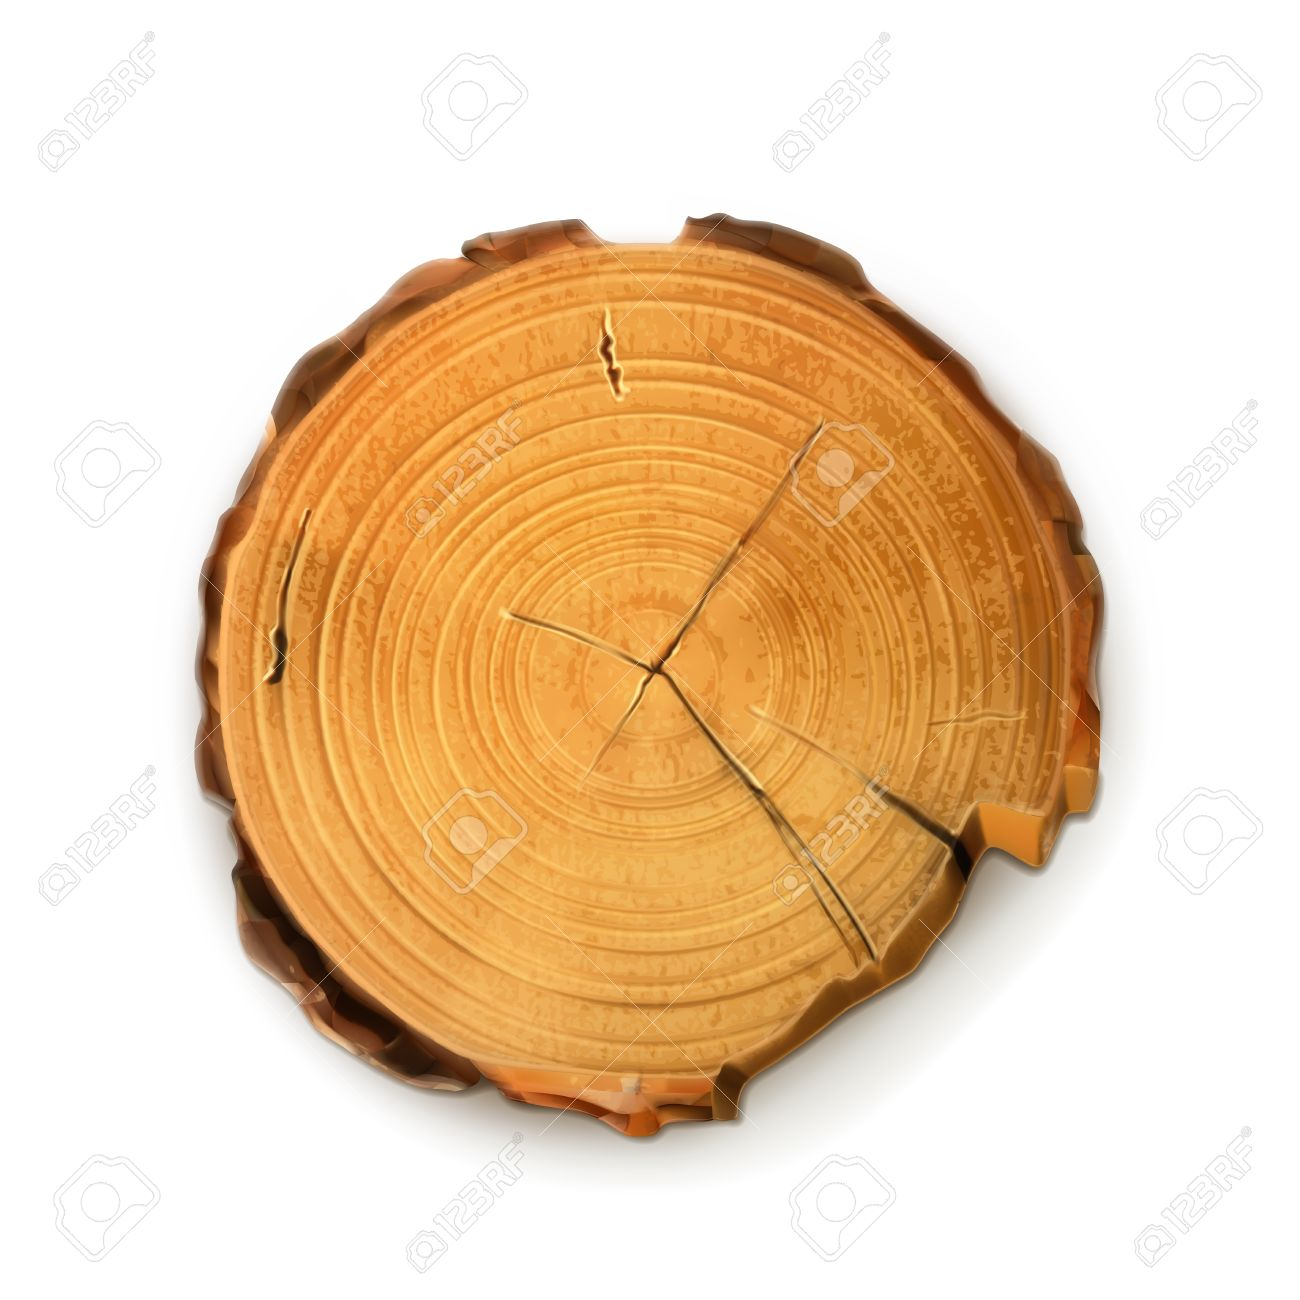 Tree Stump, Round Cut With Annual Rings Vector Royalty Free.